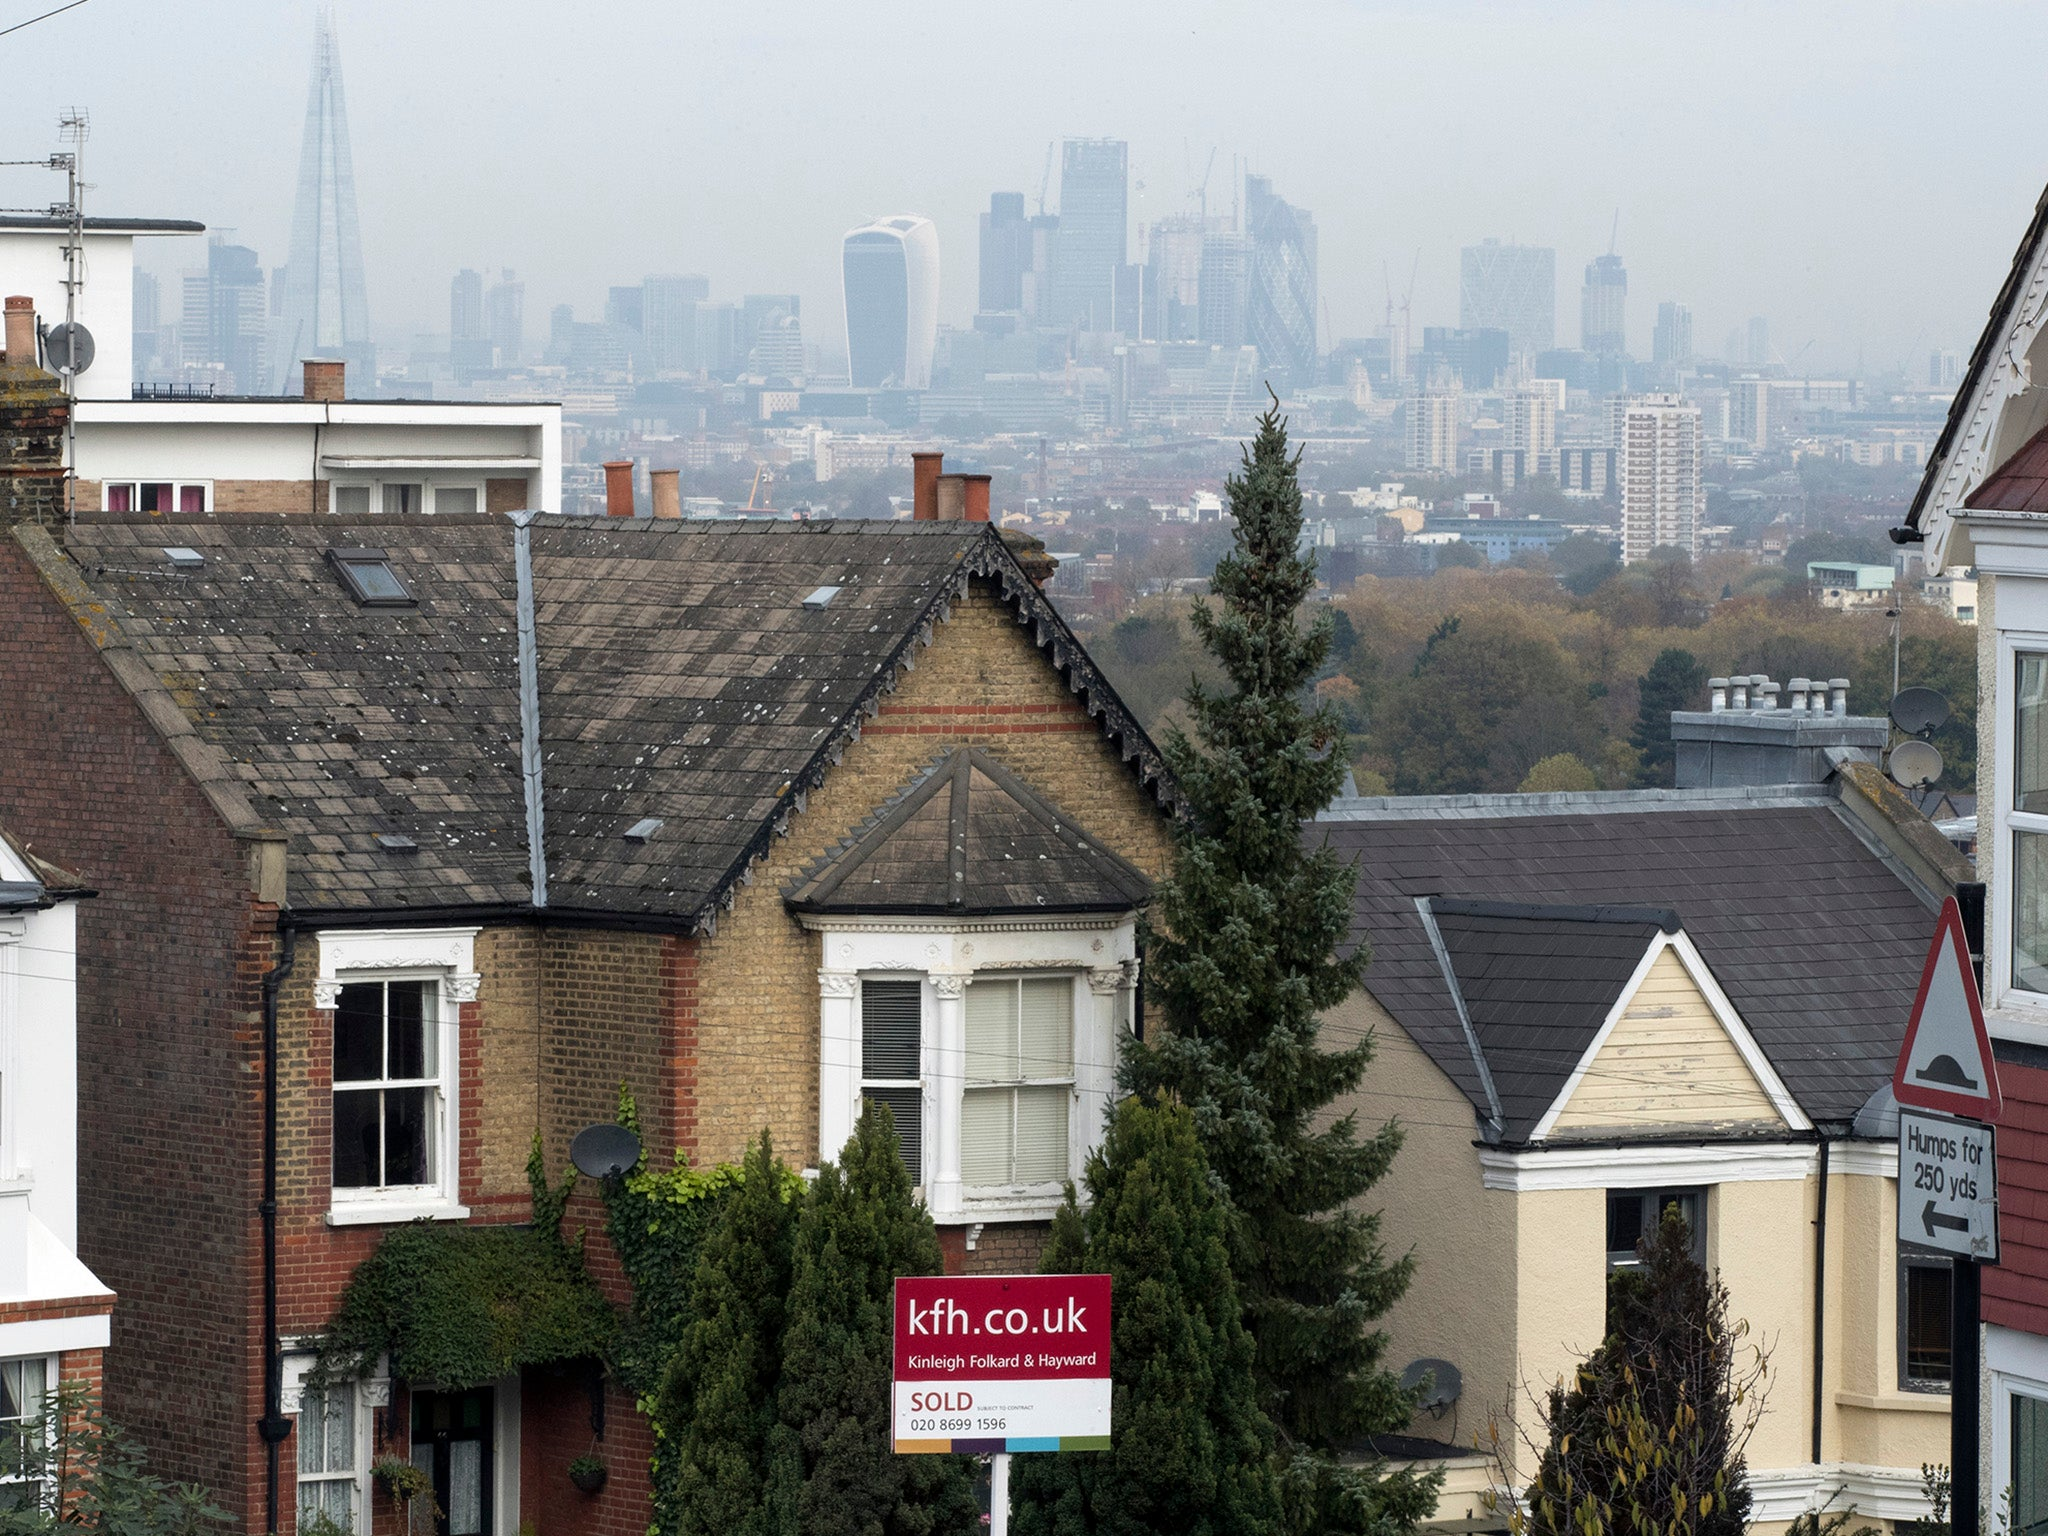 House-hunters decide on moving into a new property in just eight minutes, finds study